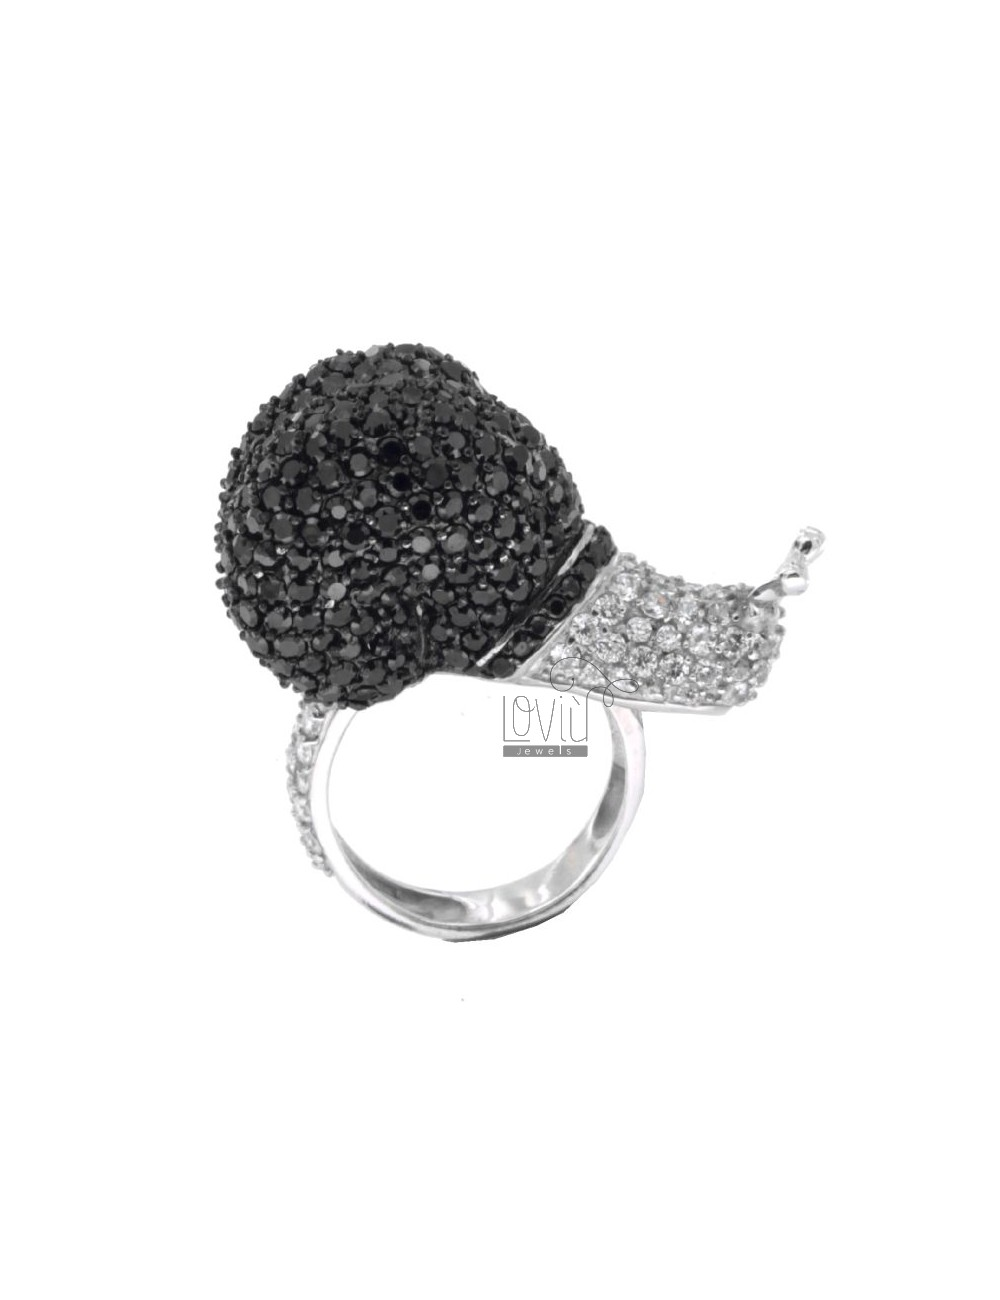 RING IN THE SNAIL 925 AG TIT AND ZIRCONIA WHITE AND ERI SIZE 15